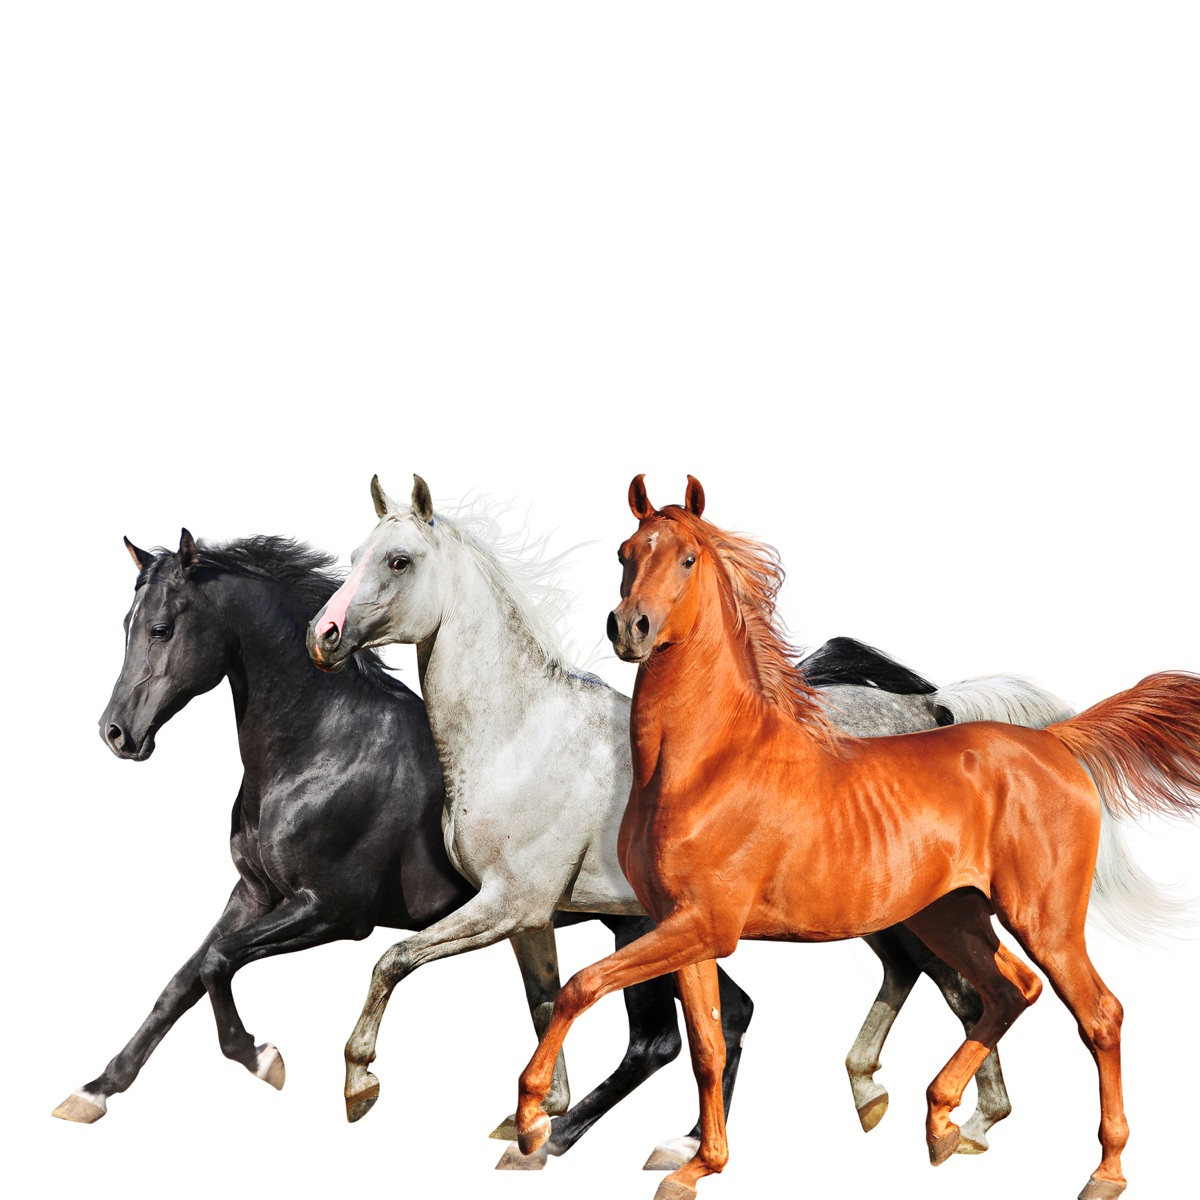 Old Town Road Diplo Remix - Single Lil Nas X Billy Ray Cyrus  Diplo CD cover